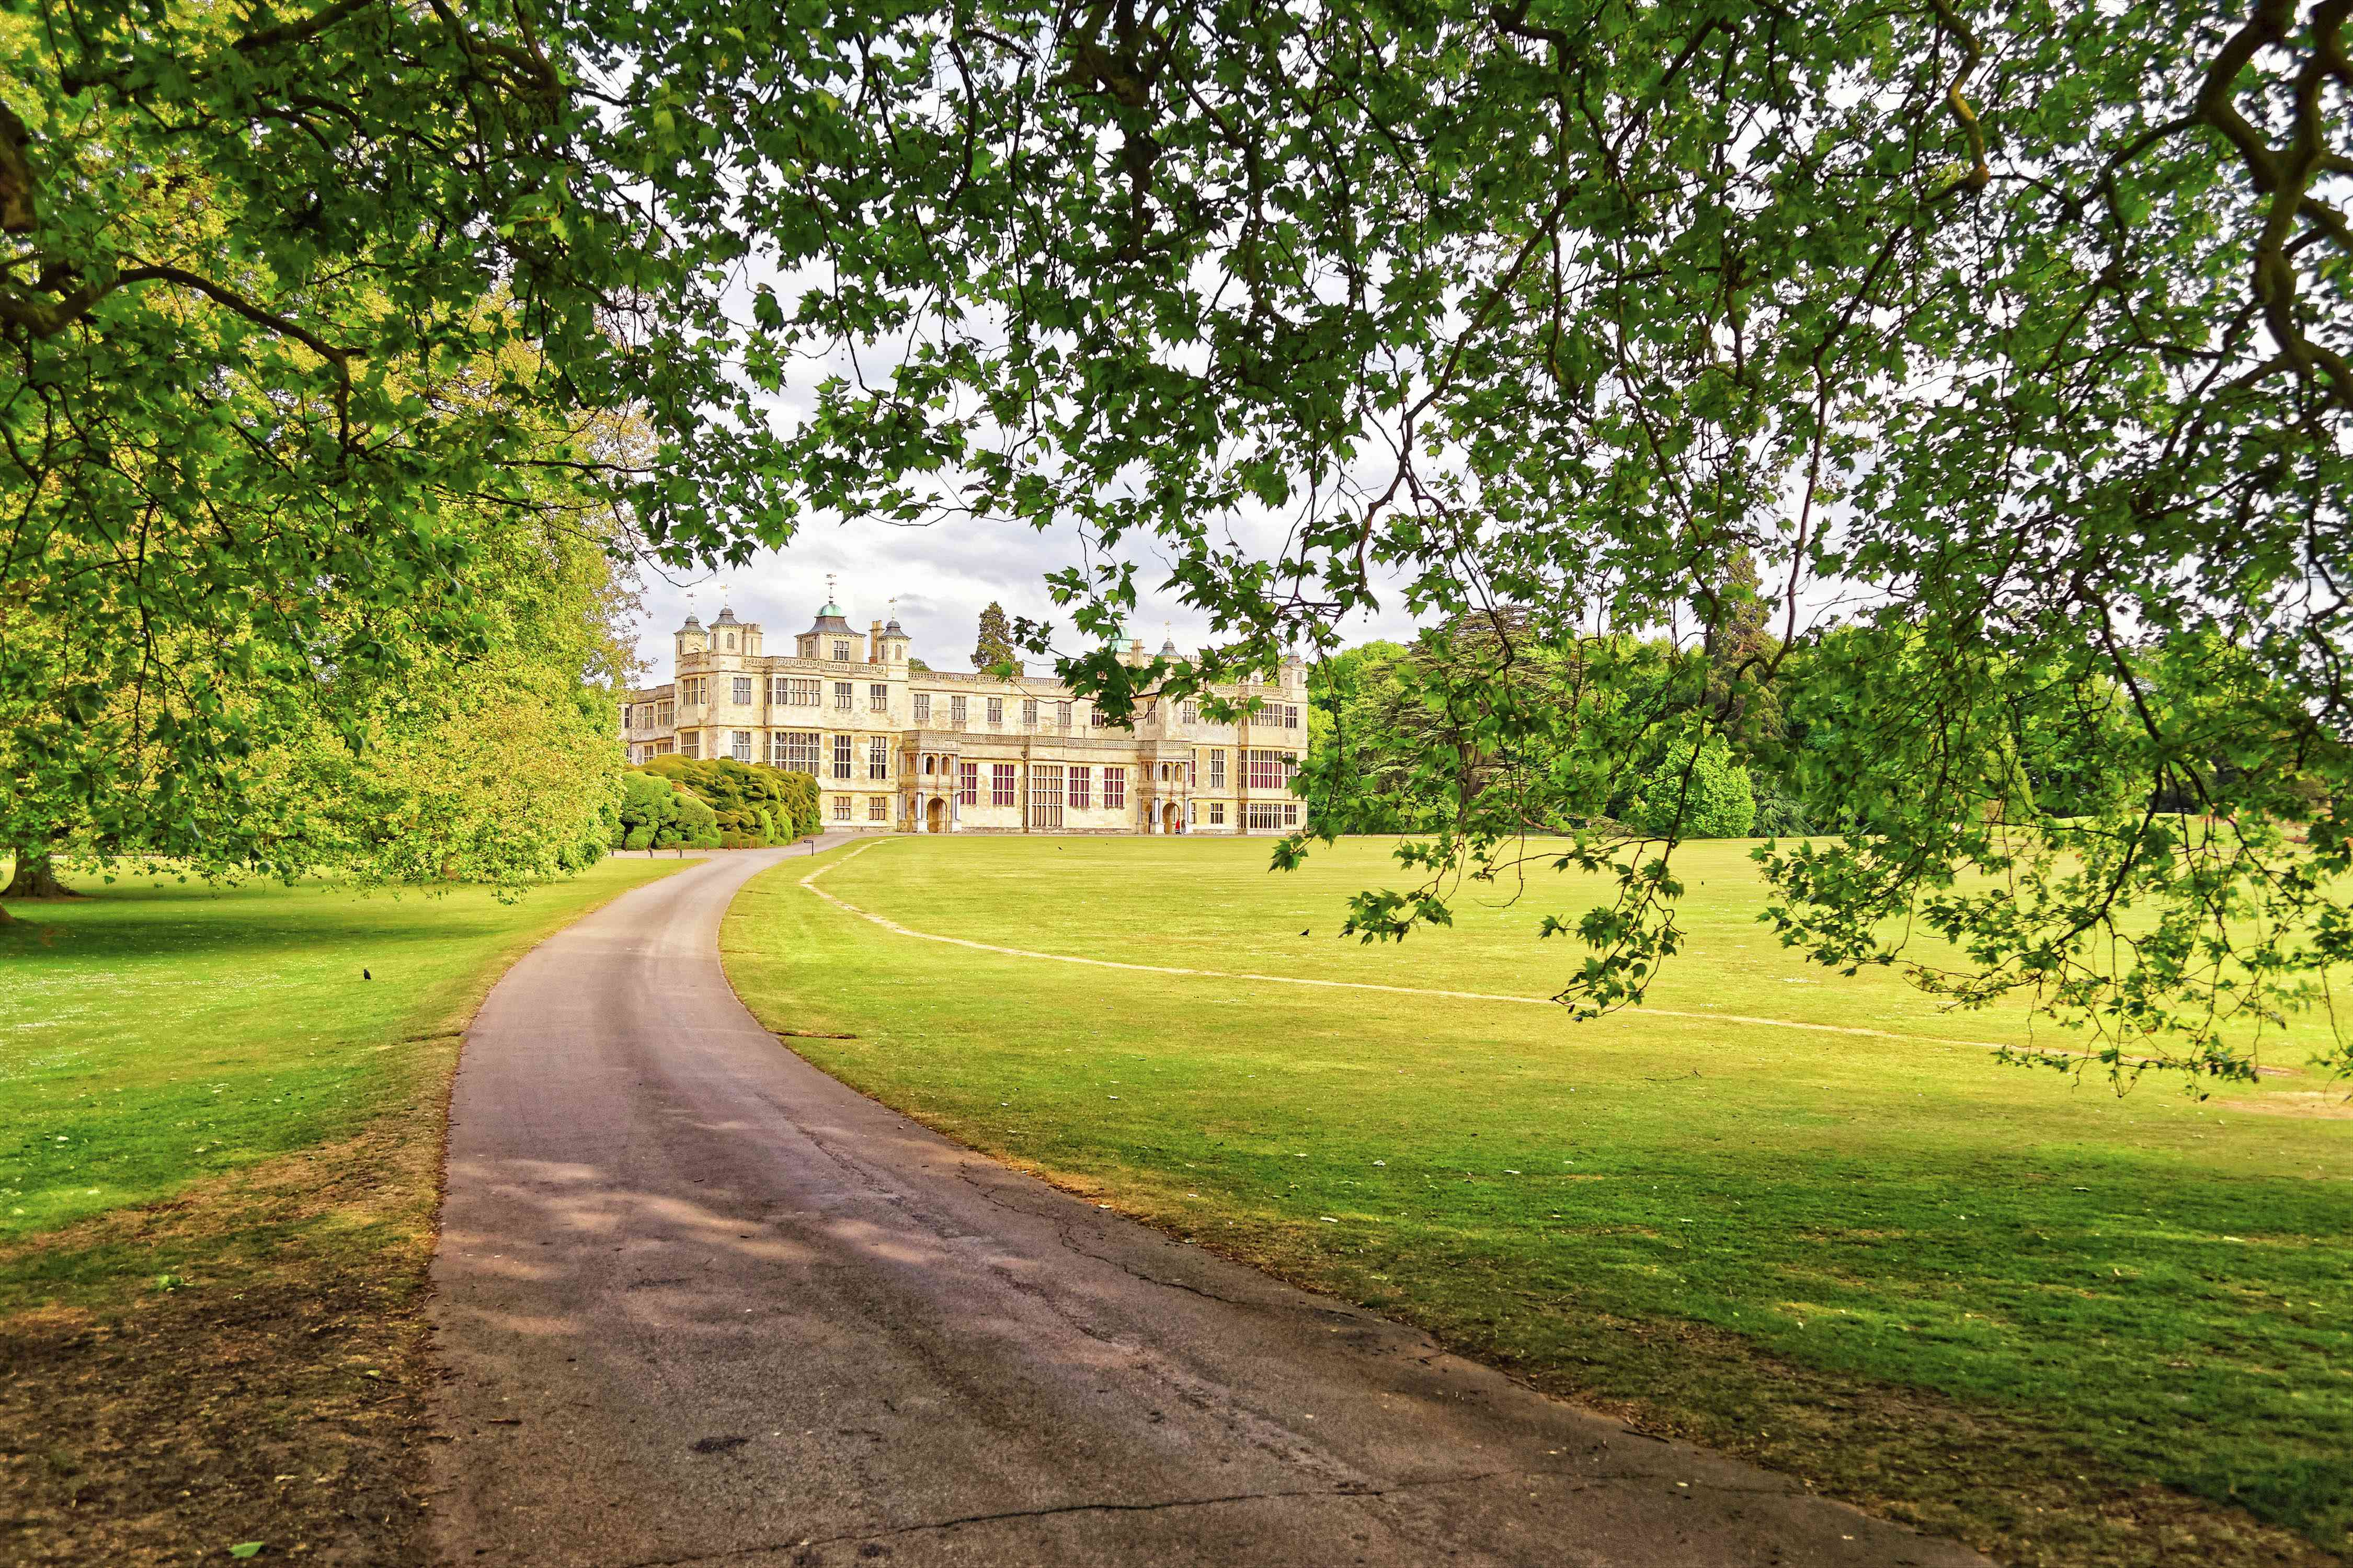 Path to Audley End House in Essex in England